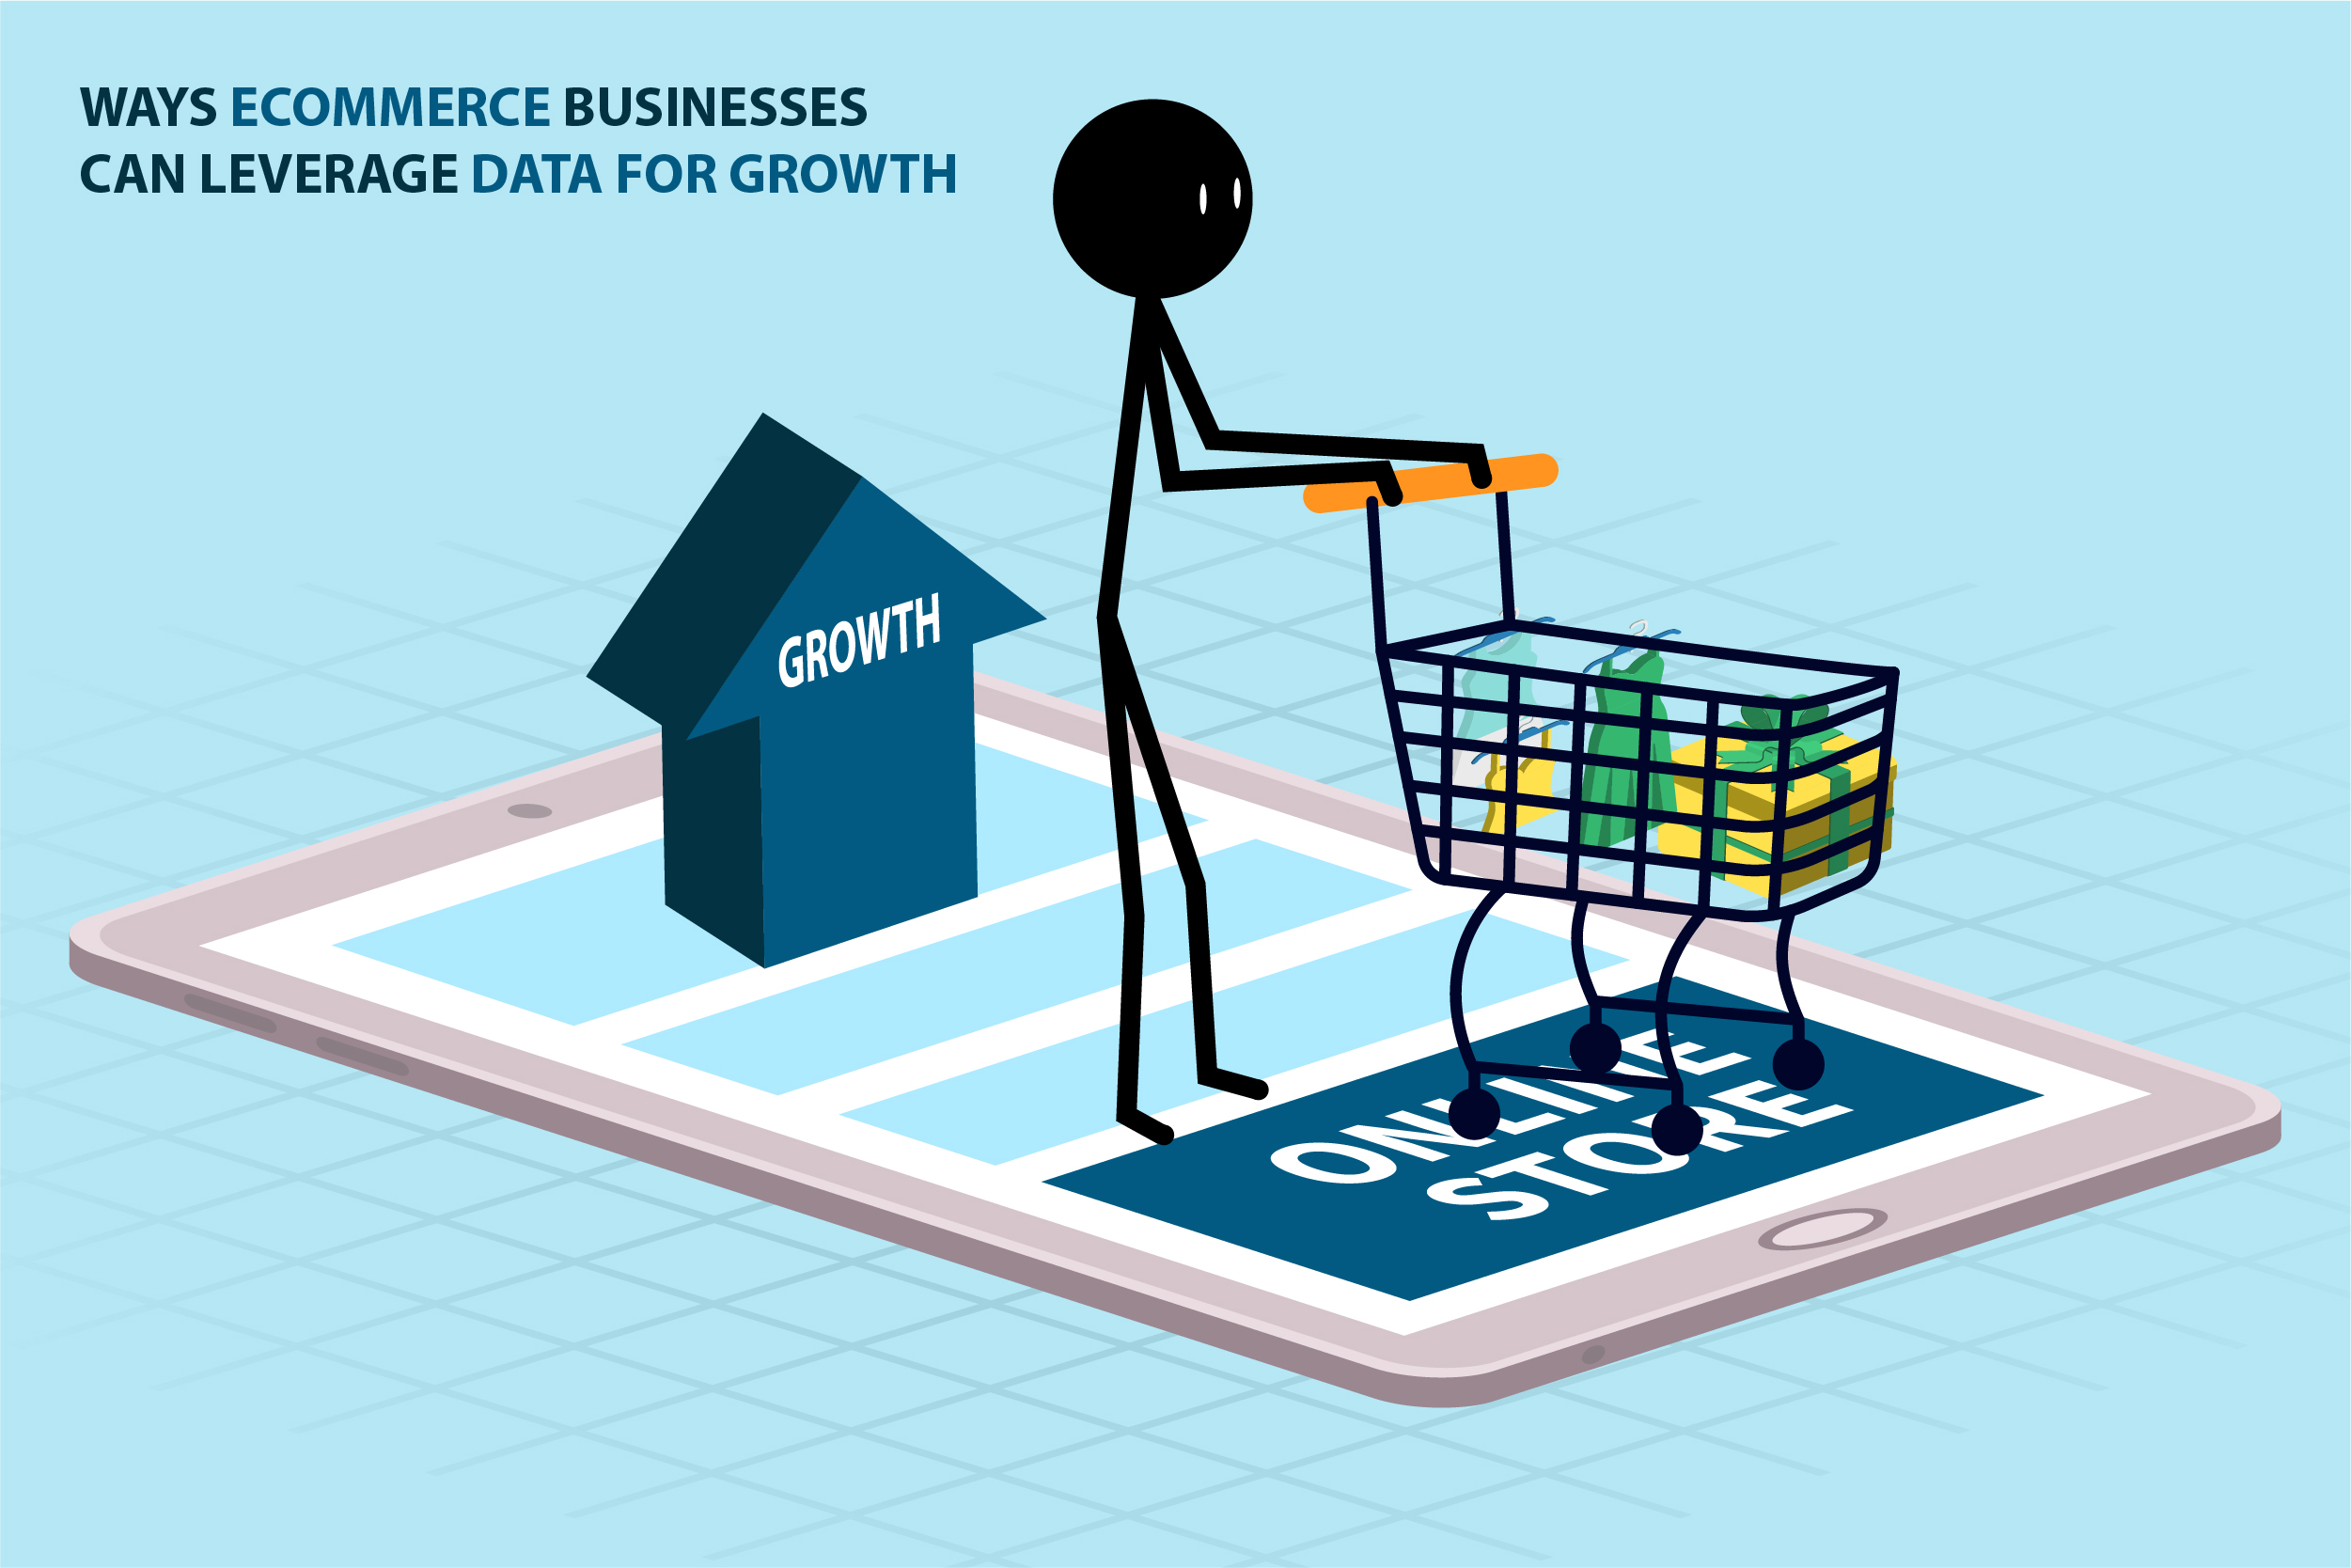 Ways Ecommerce Businesses can Leverage Data for Growth